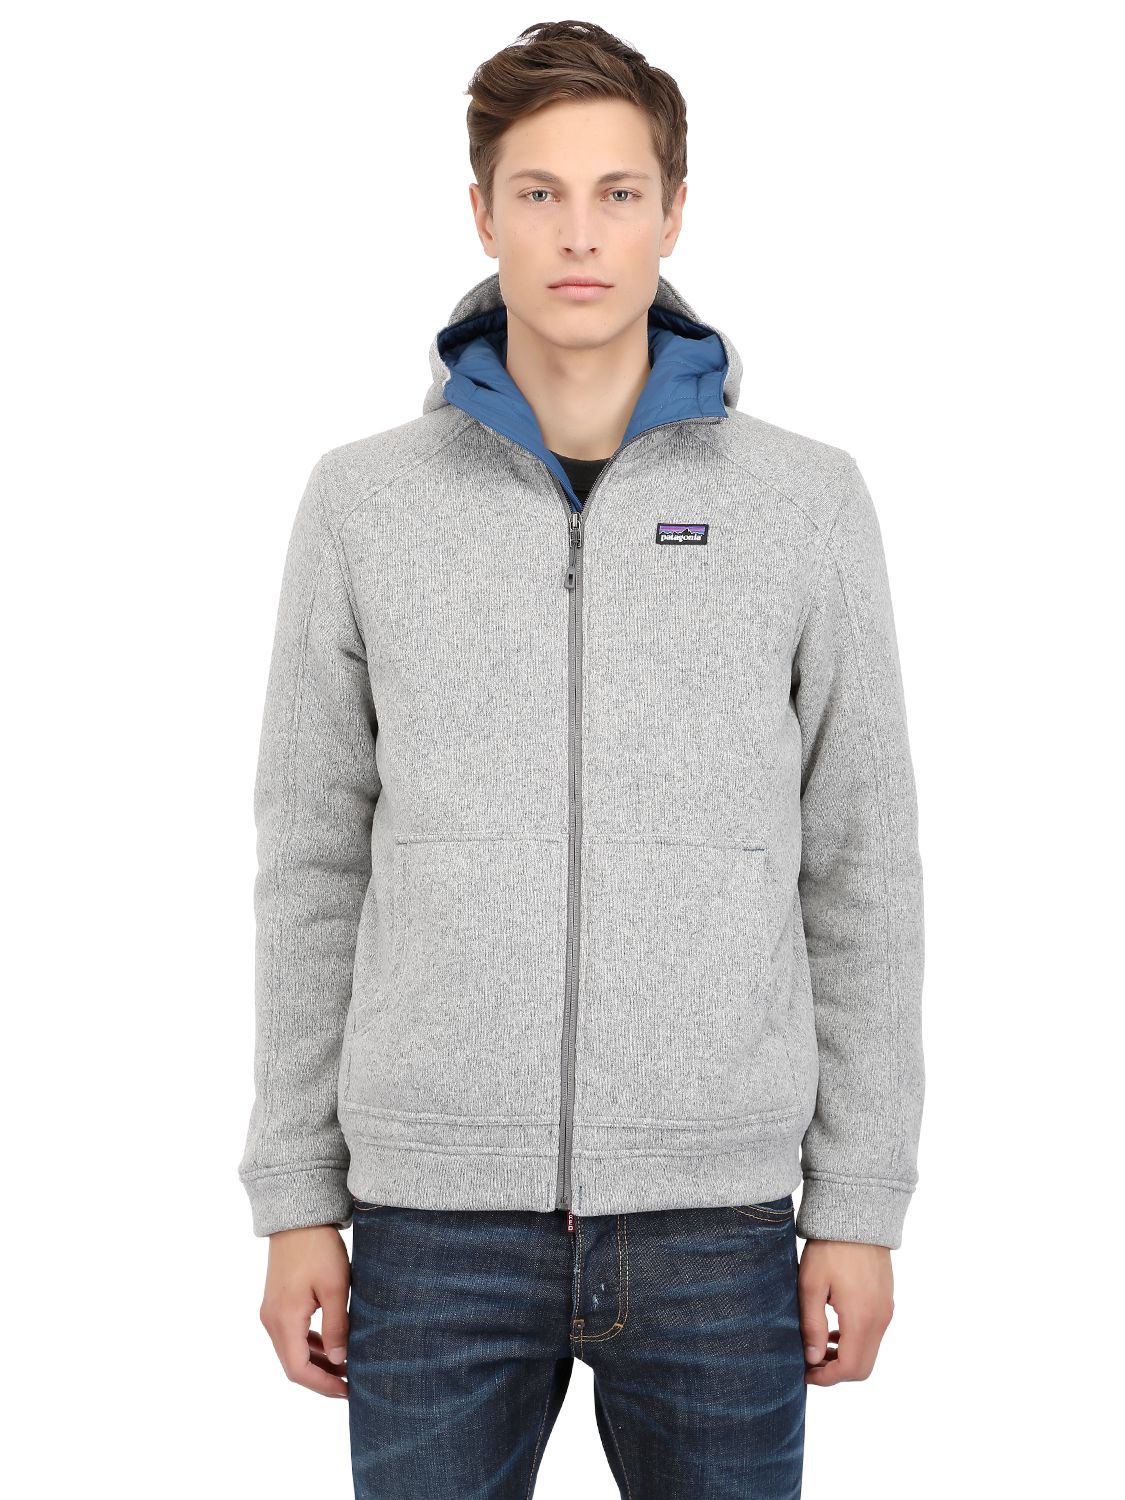 Lyst Patagonia Better Sweater Hoody Fleece Jacket In